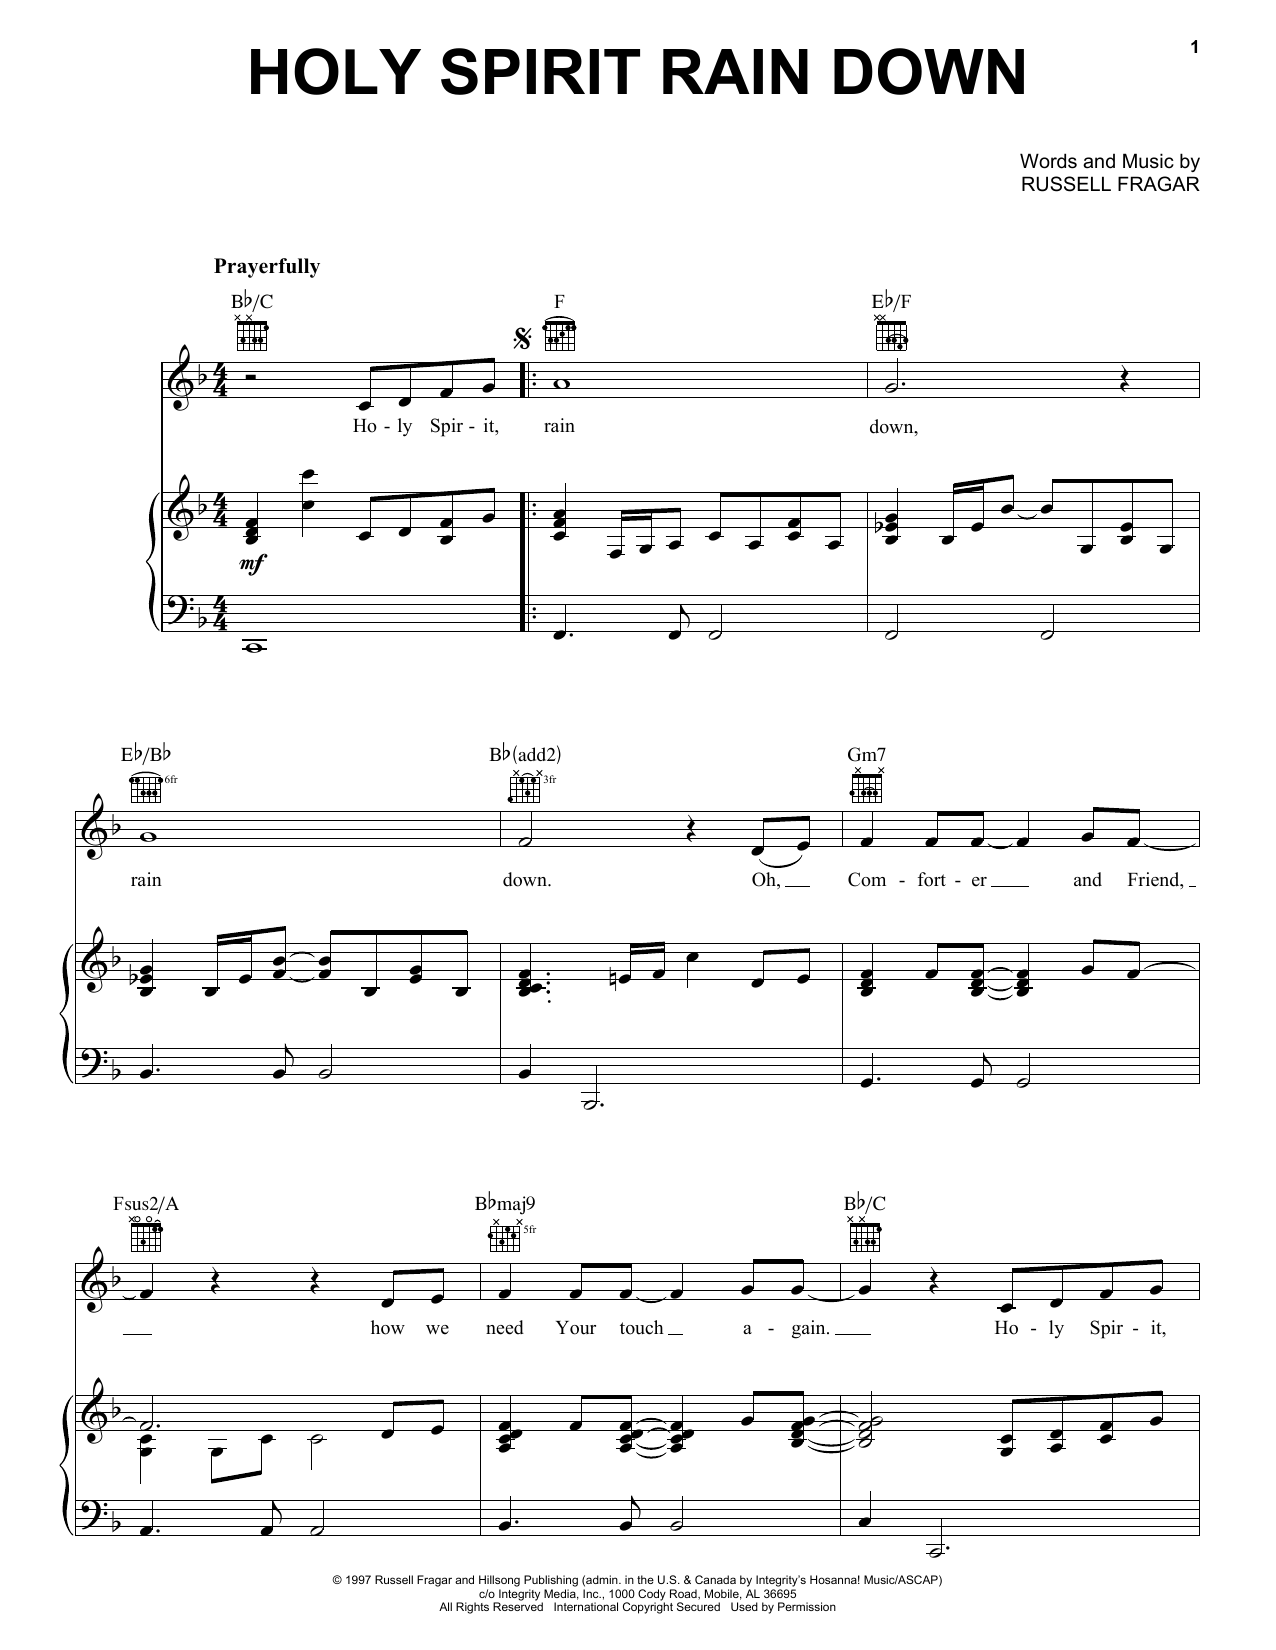 Russell Fragar Holy Spirit Rain Down sheet music notes and chords. Download Printable PDF.